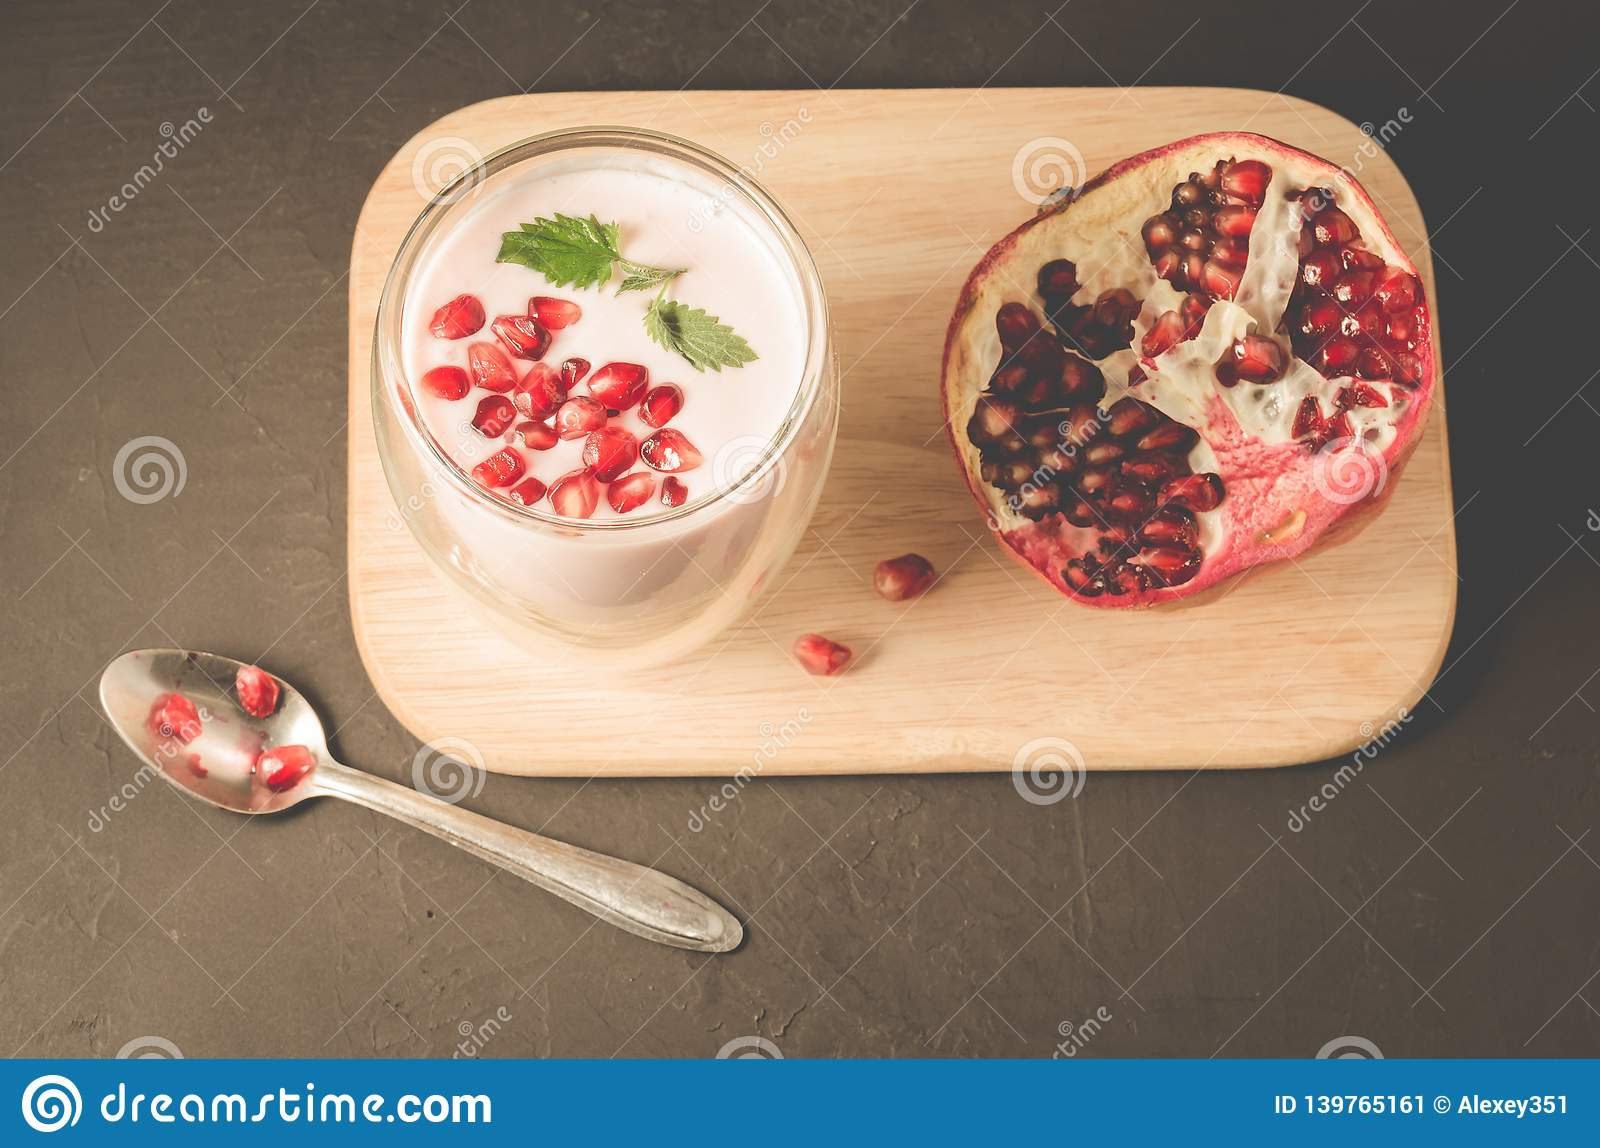 Yogurt. Yogurt with cereals, garnet and mint in glass and pomegranate fruit on a wooden tray. Dark backgtound table. Top view.